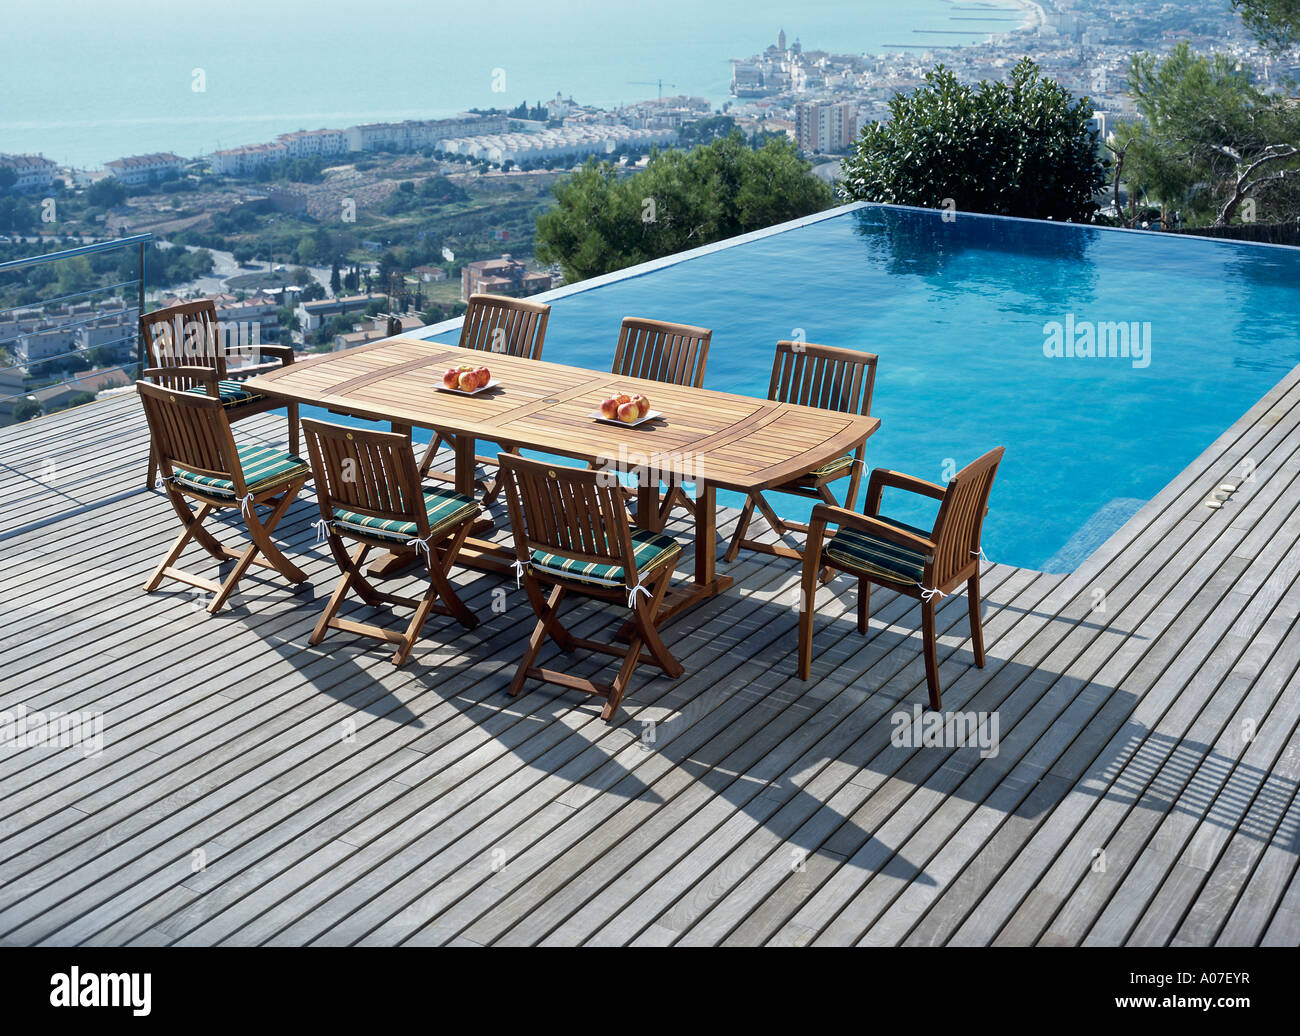 View Of A Dining Table Beside A Clear Swimming Pool Stock Photo Royalty Free Image 9905386 Alamy